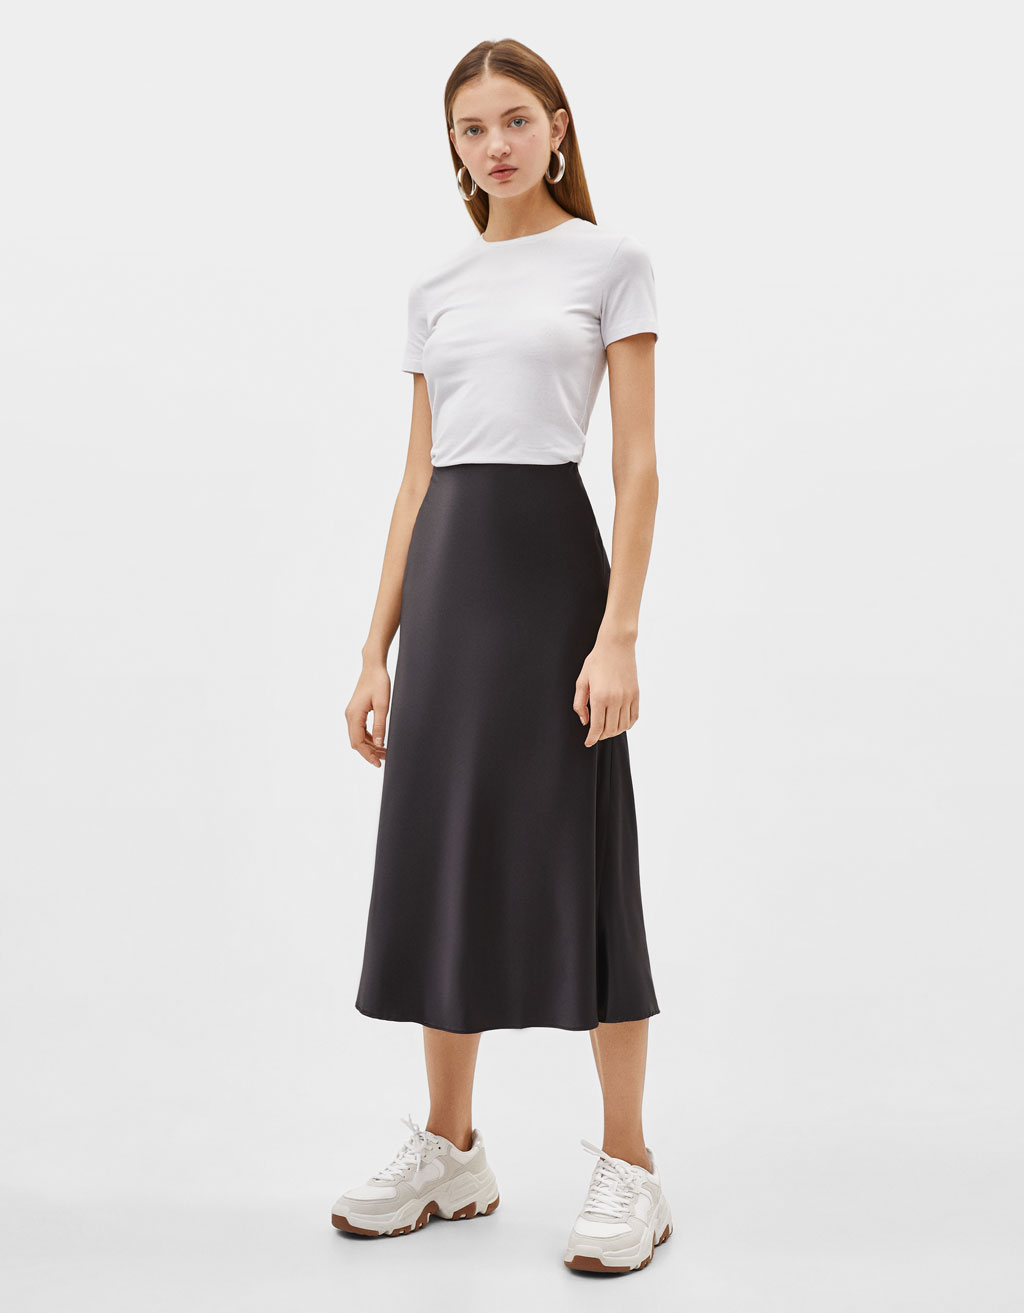 070e2d8b4 Satin midi skirt - Midi - Bershka Greece